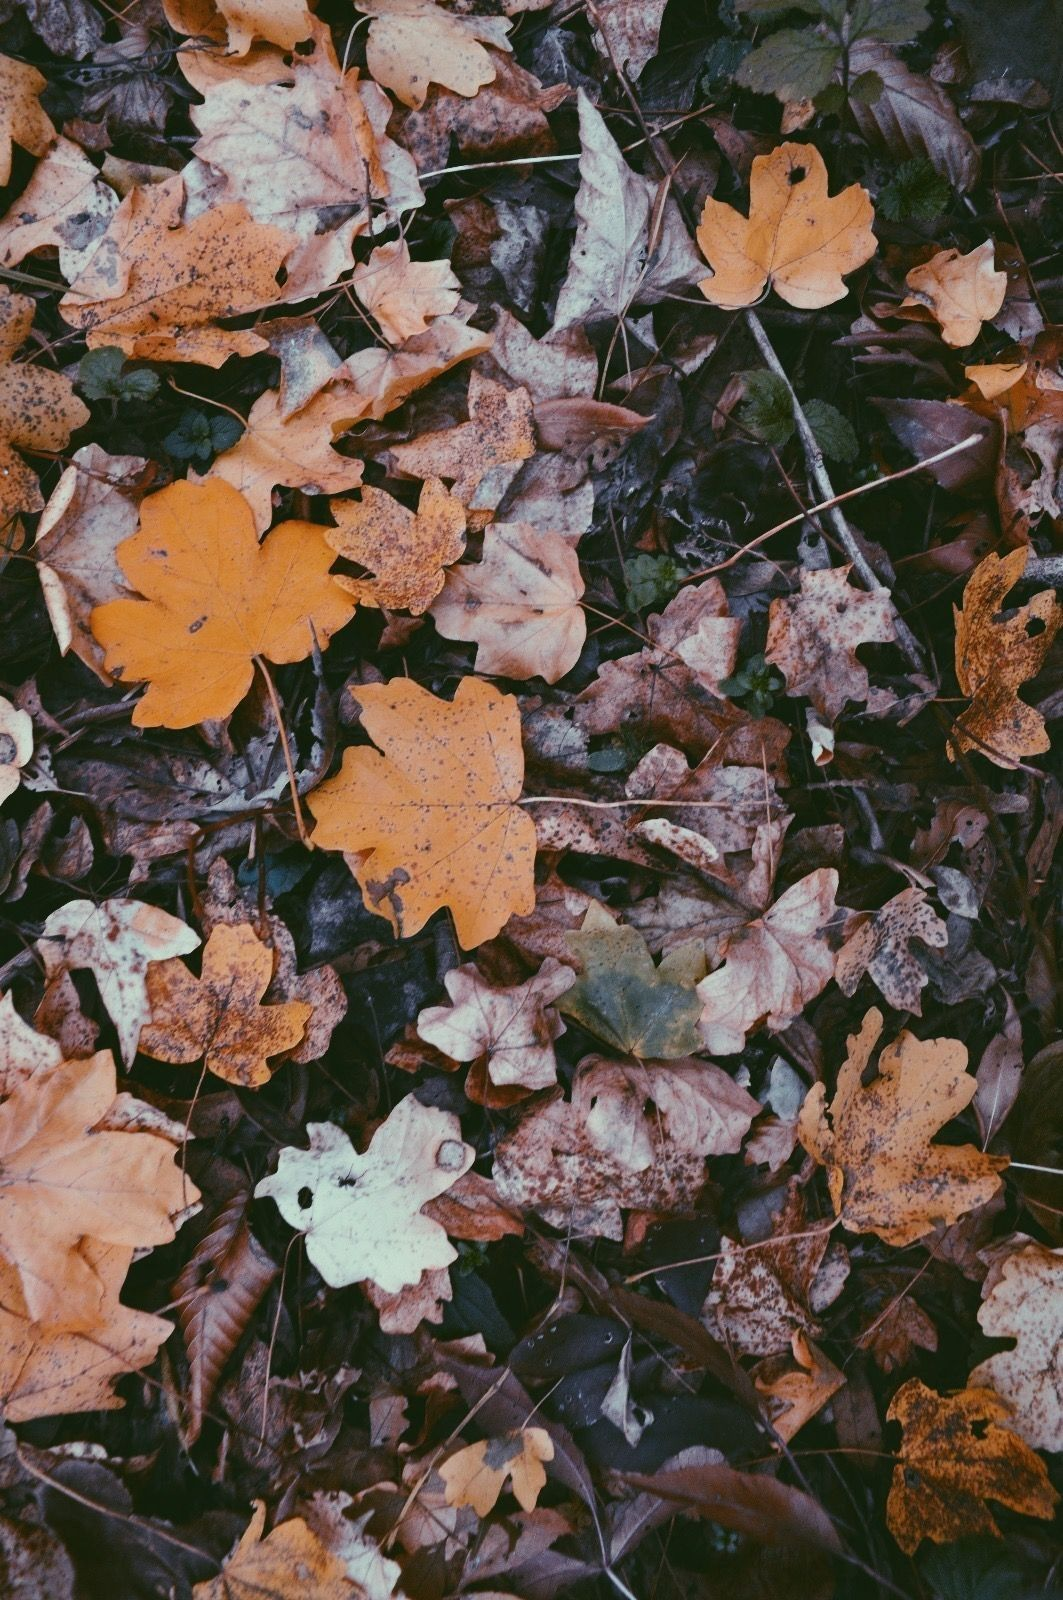 Autumn Aesthetic Wallpapers Top Free Autumn Aesthetic